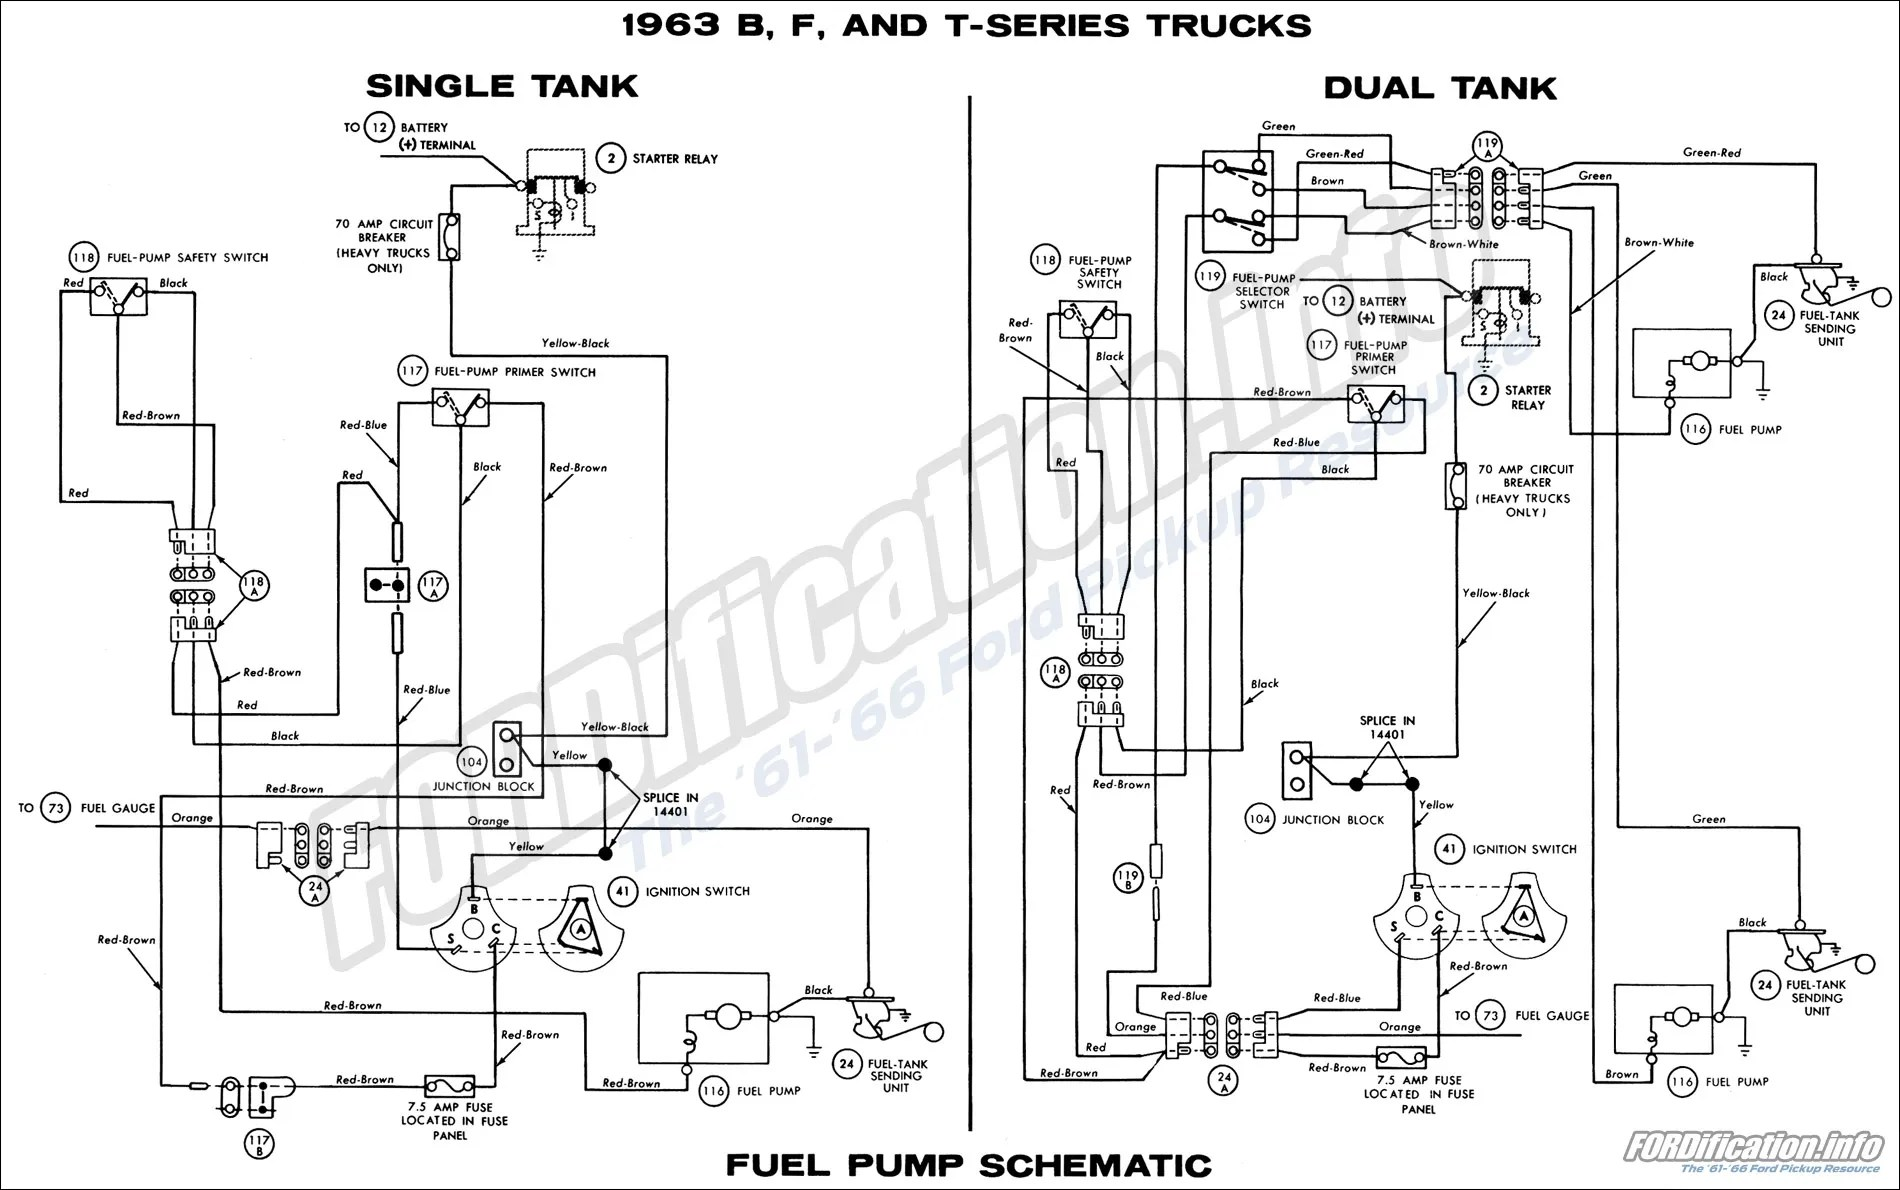 hight resolution of navistar international wiring diagrams vt365 simple wiring diagram 06 4300 international dt466 wiring diagram navistar